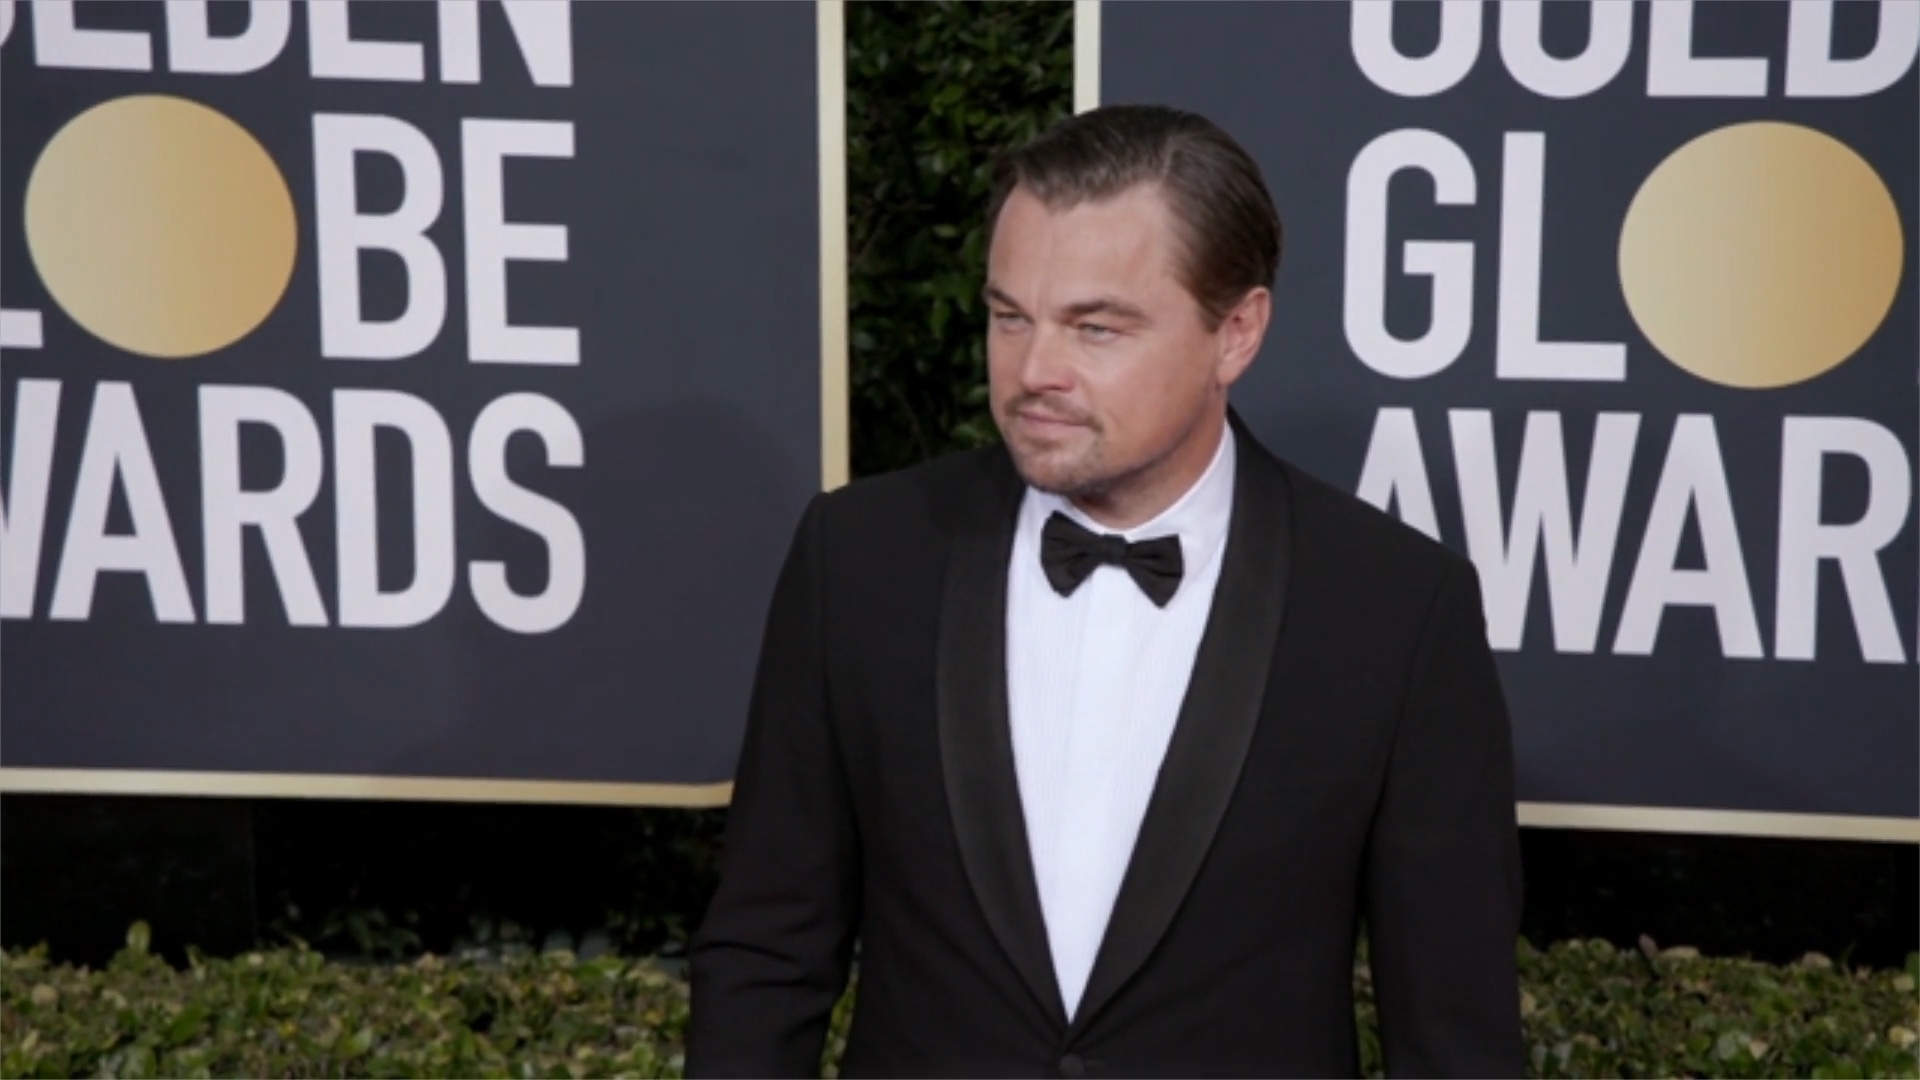 Leonardo DiCaprio reportedly helps save man from drowning during Caribbean vacation